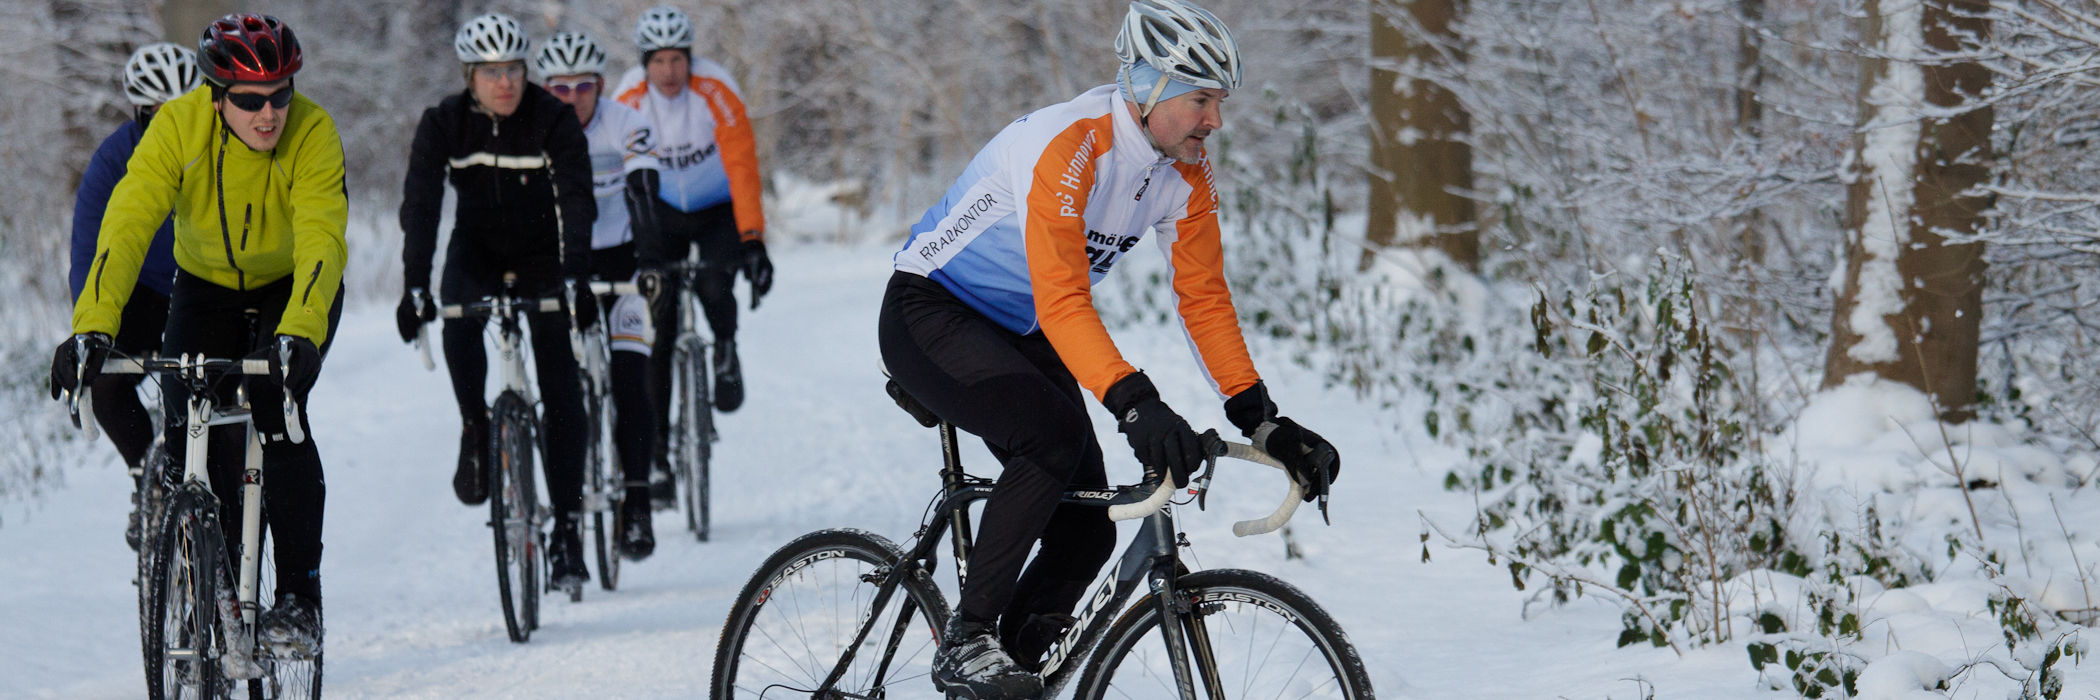 cyclocross im Winter